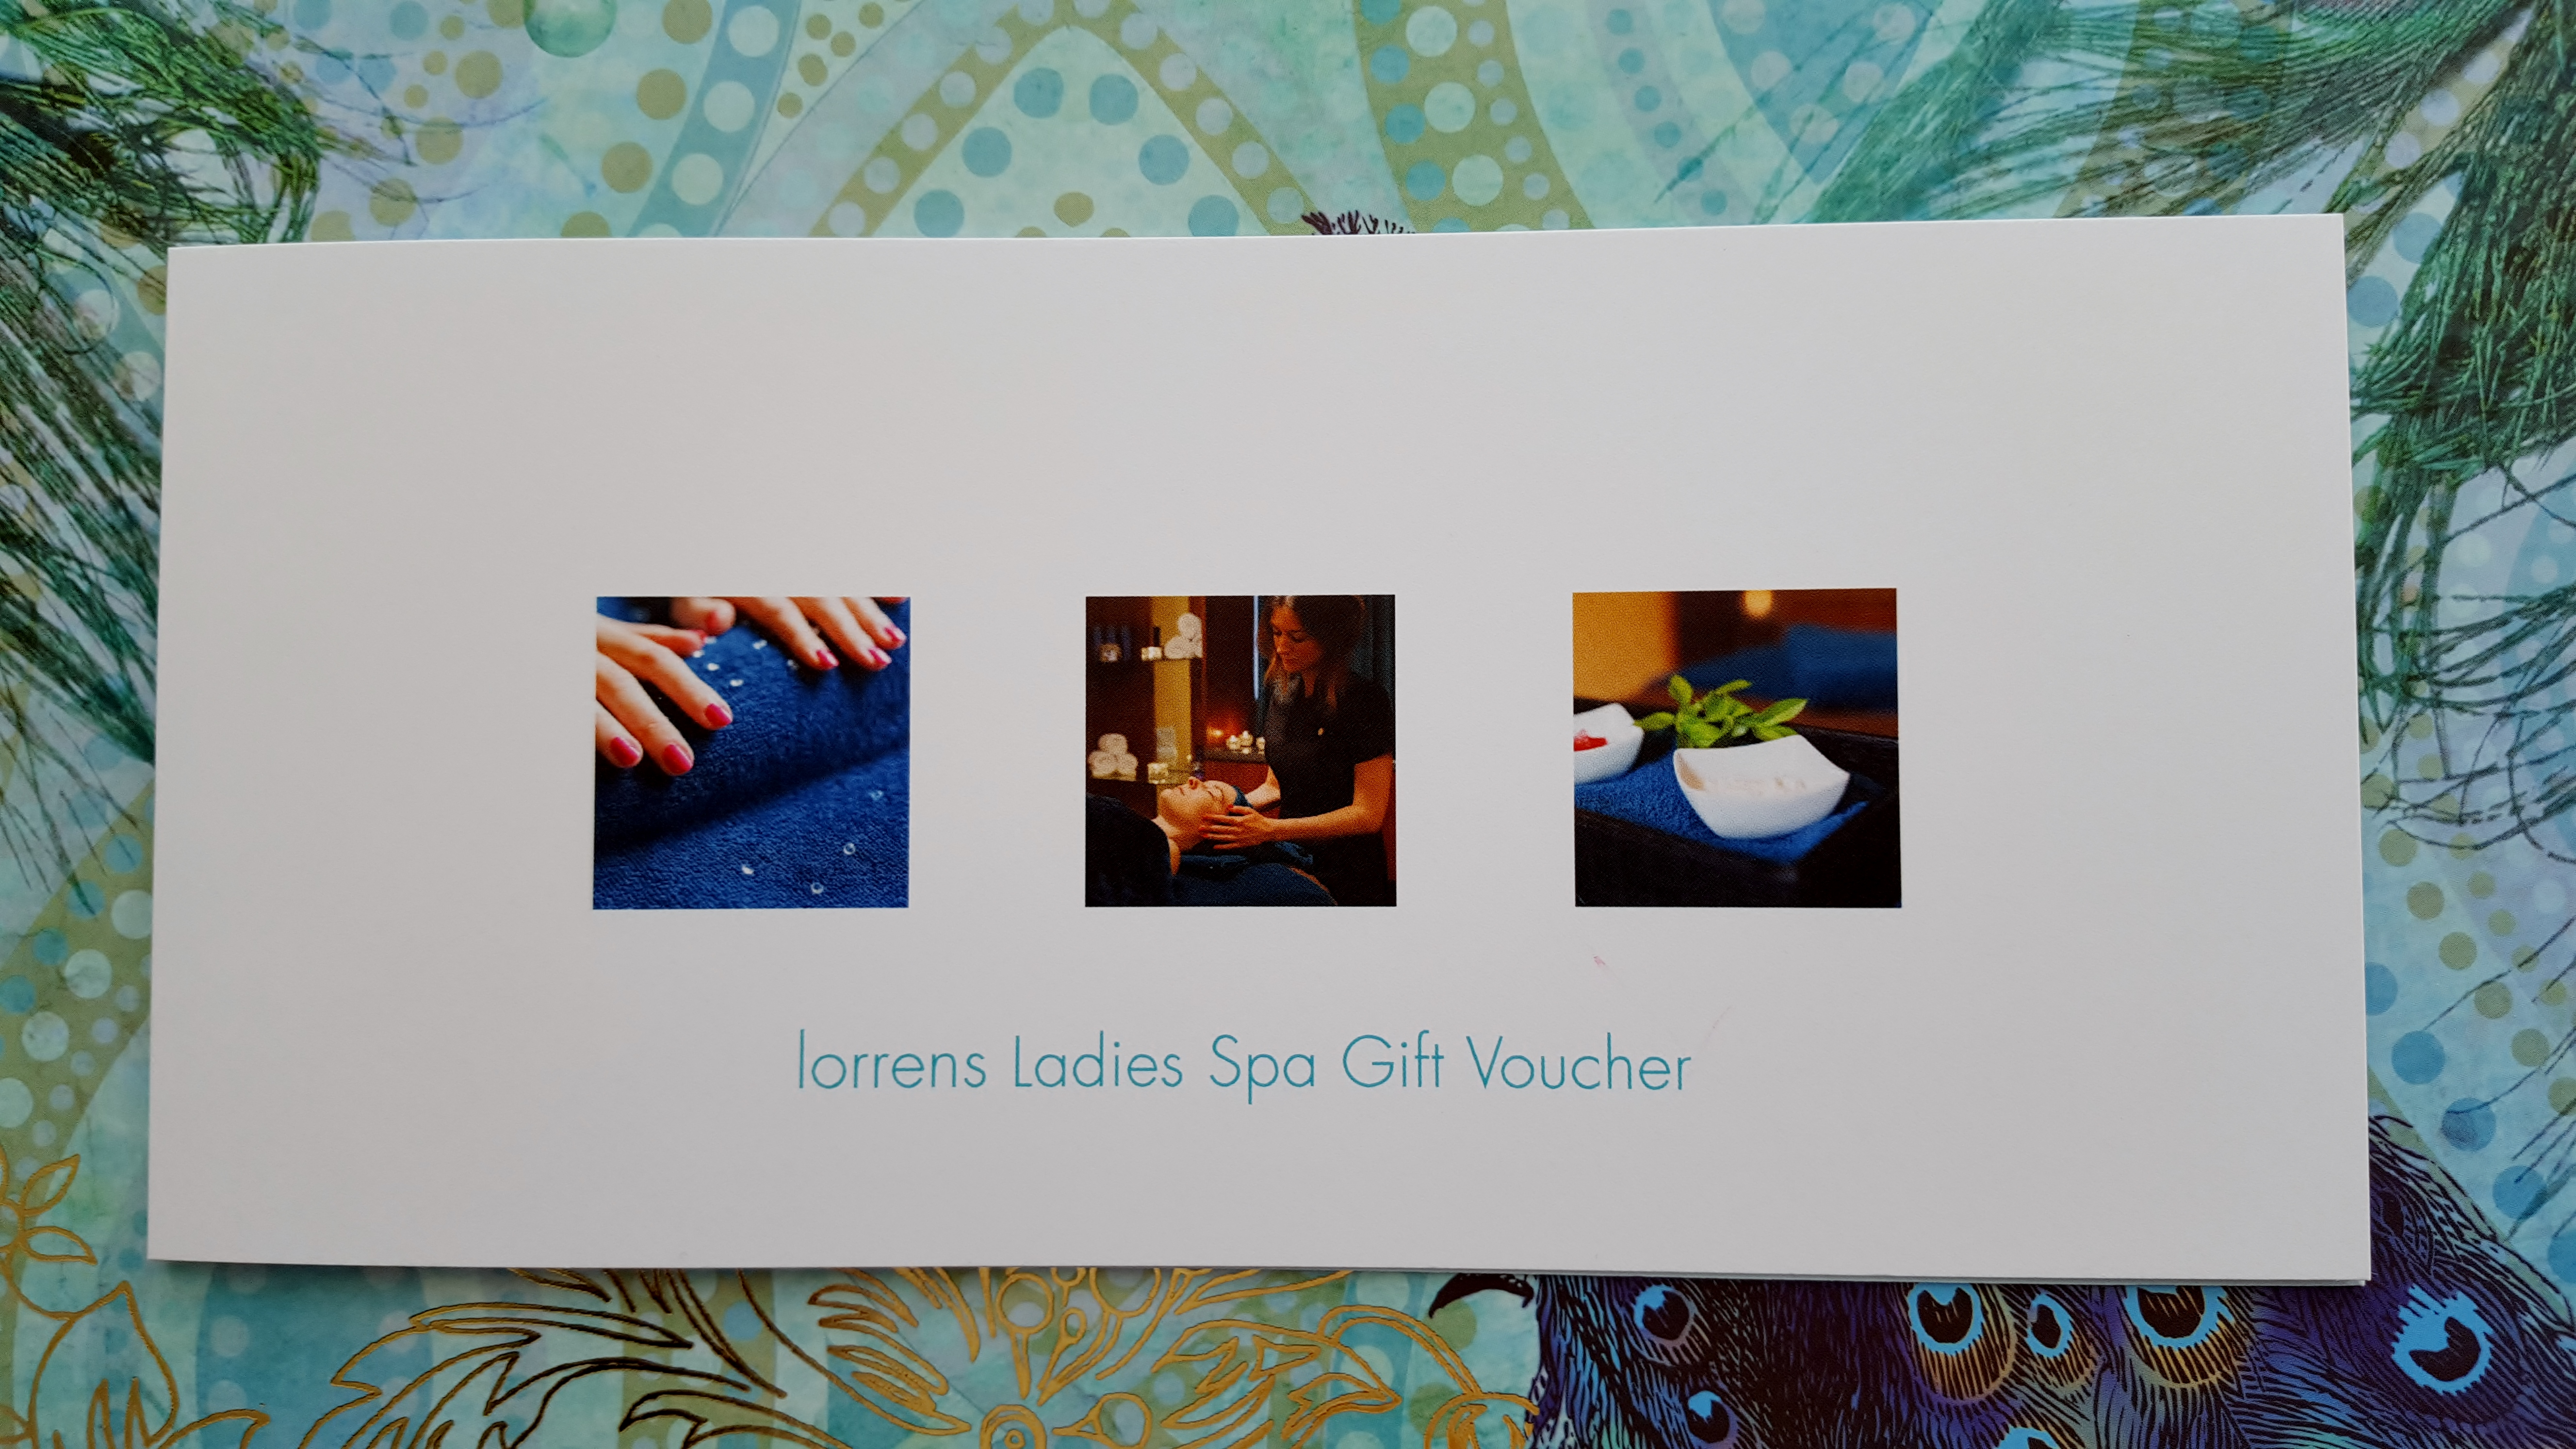 image of gift voucher at ladies only spa